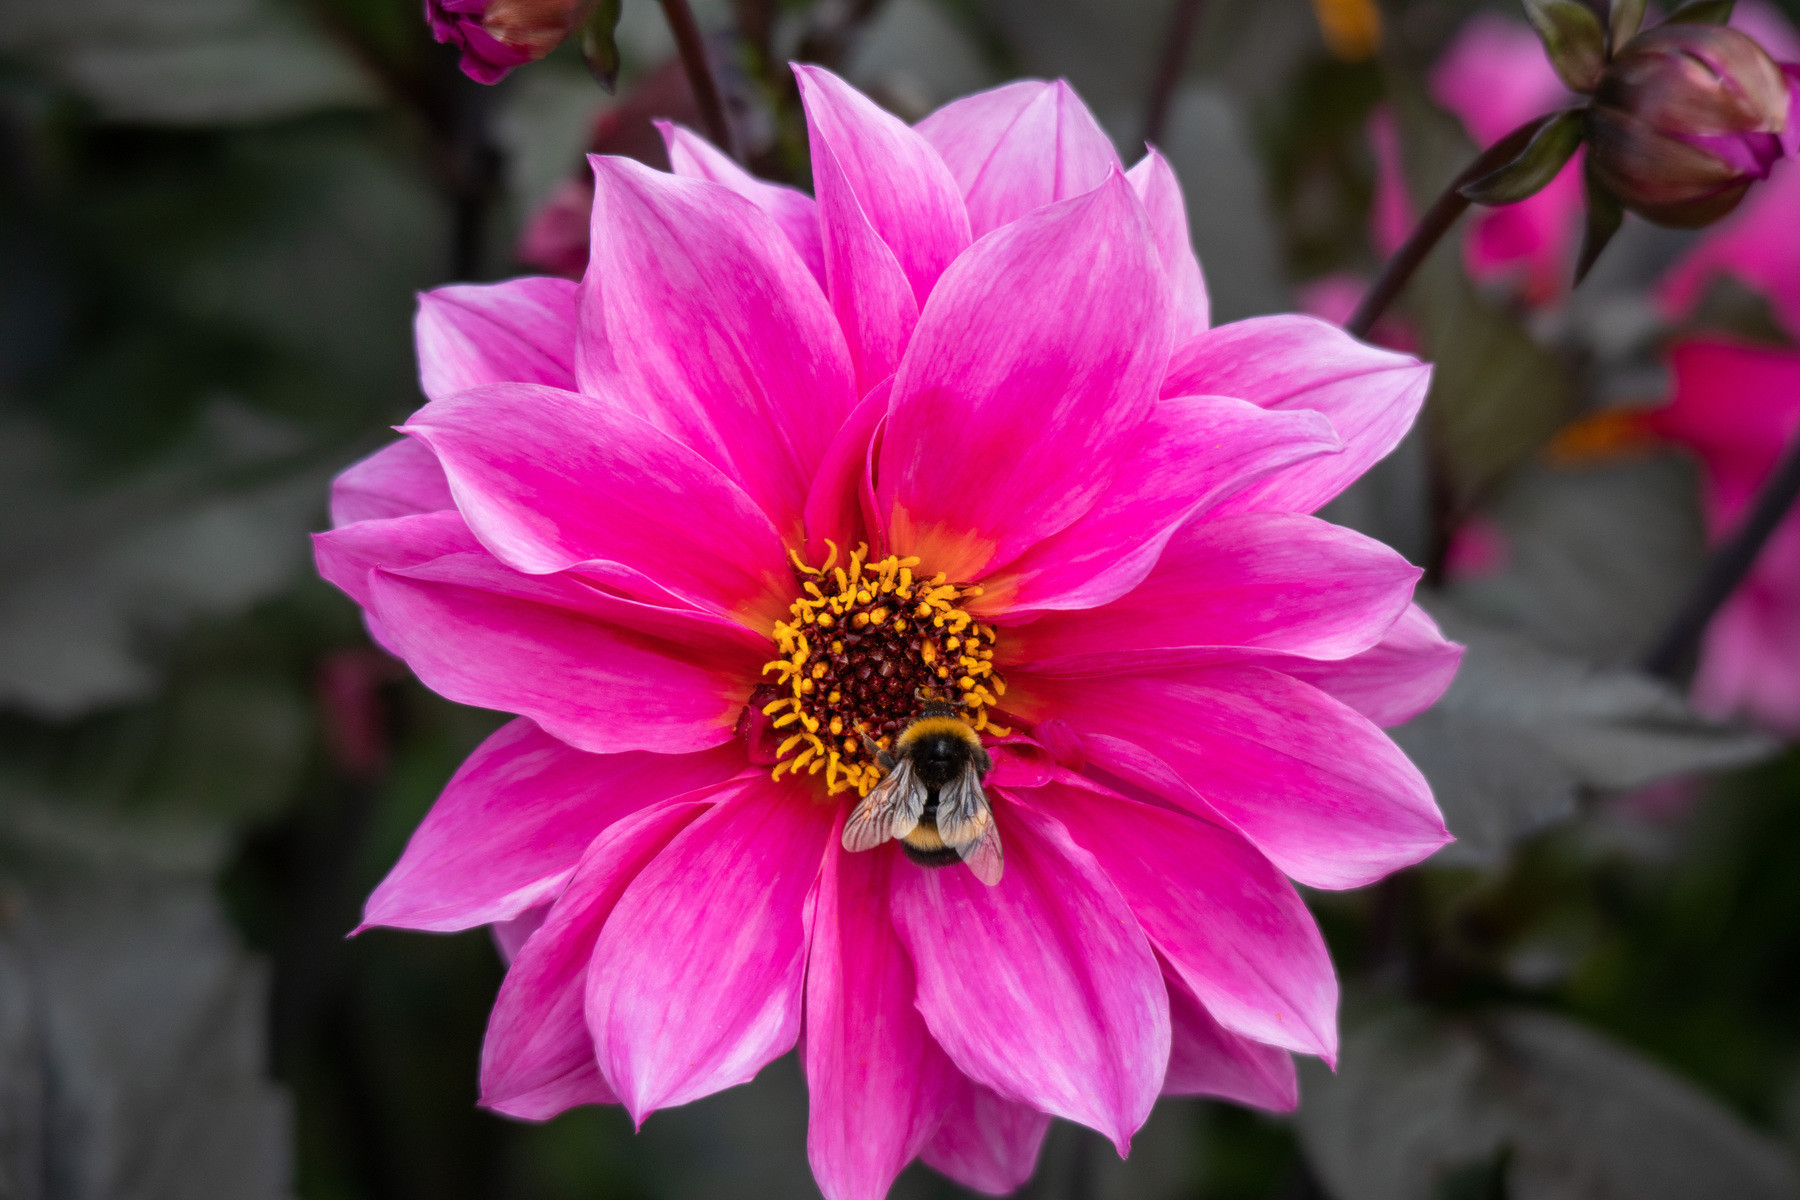 A bee hard at work on a pink flower.